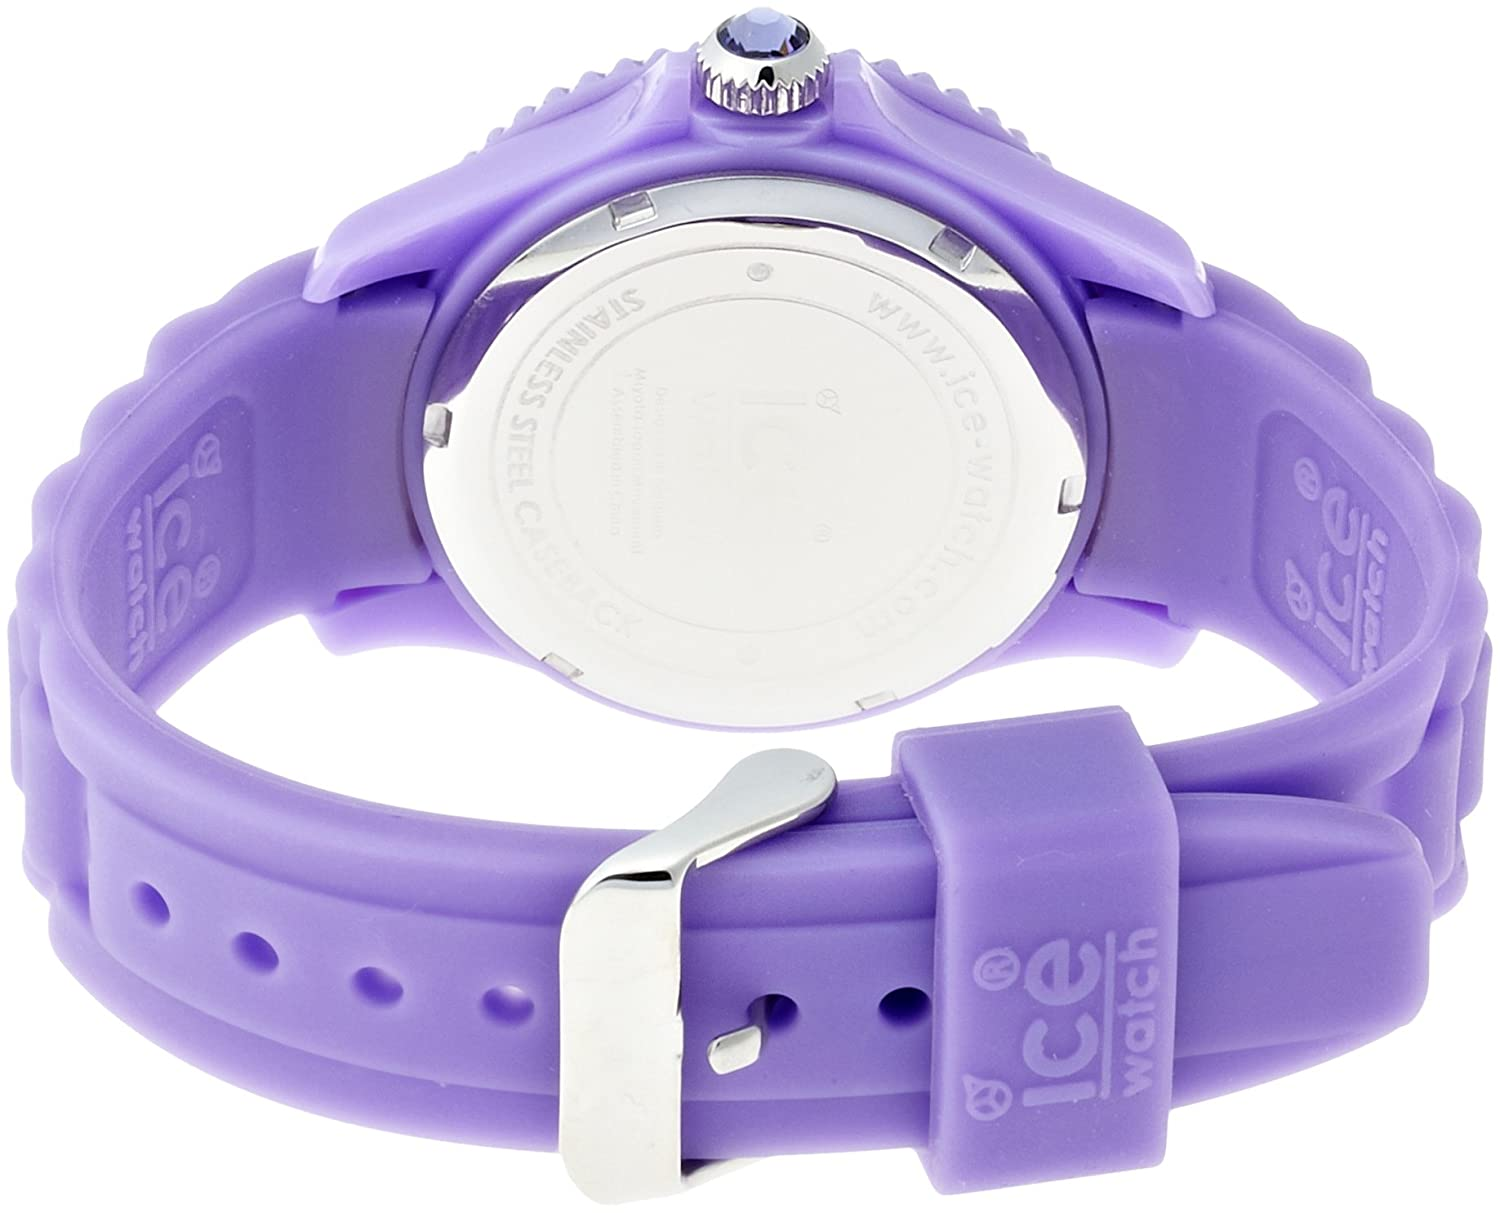 Ice Watch Love Lavender Dial Unisex Lolr Casio Ae 1000w 1a Manamp039s Waterproof Sports Electronic Lolrus11 Watches